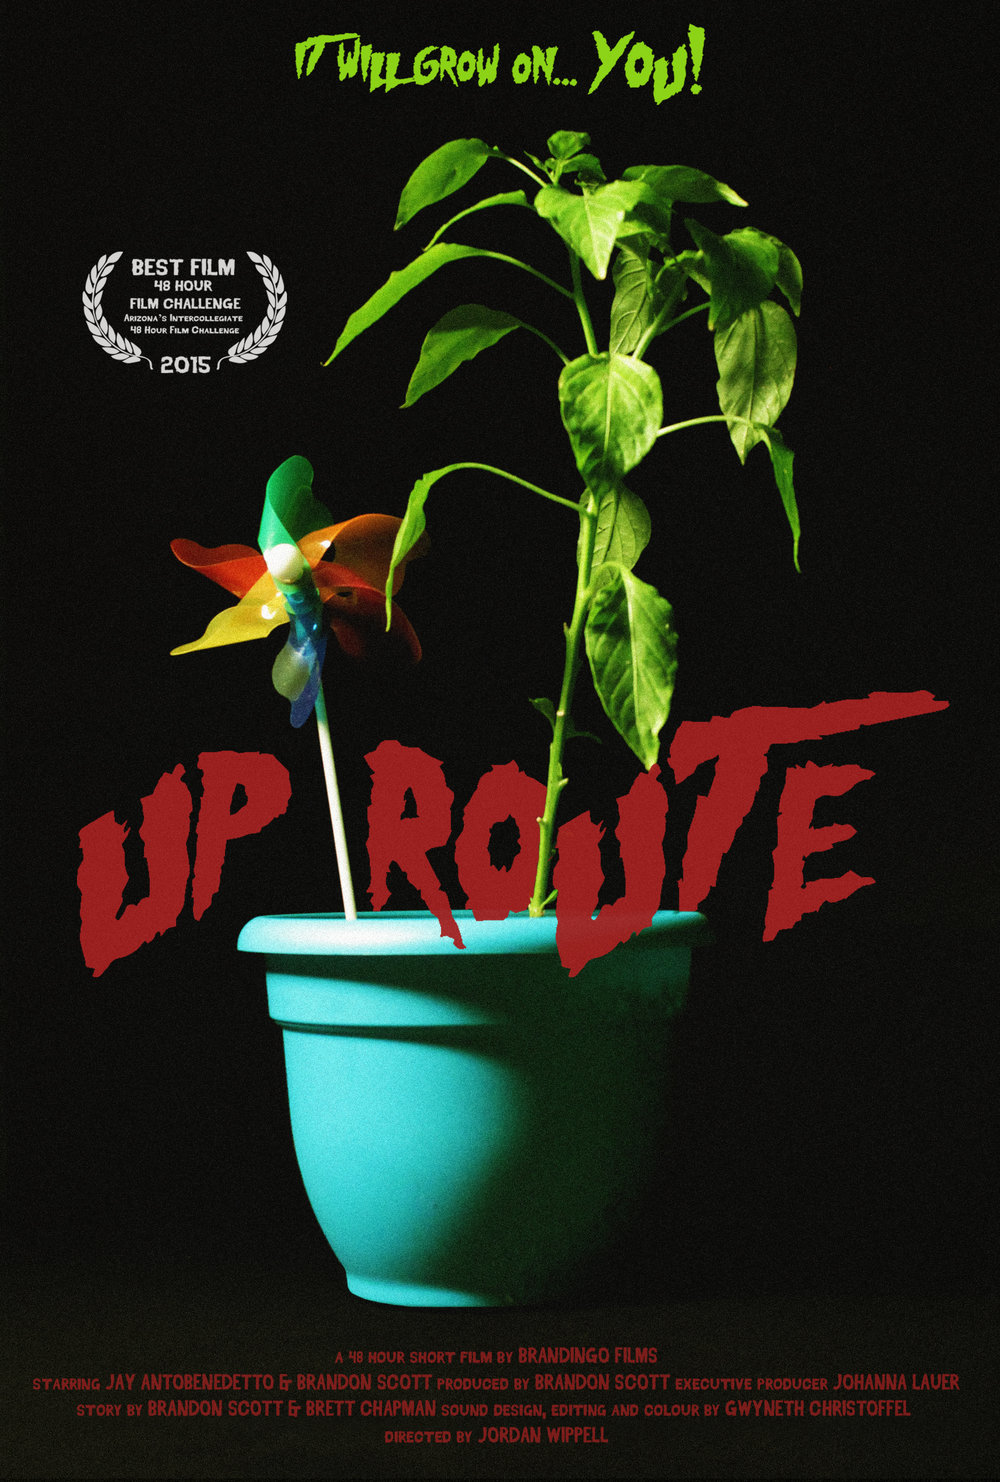 Up ROUTE movie poster copy.jpg